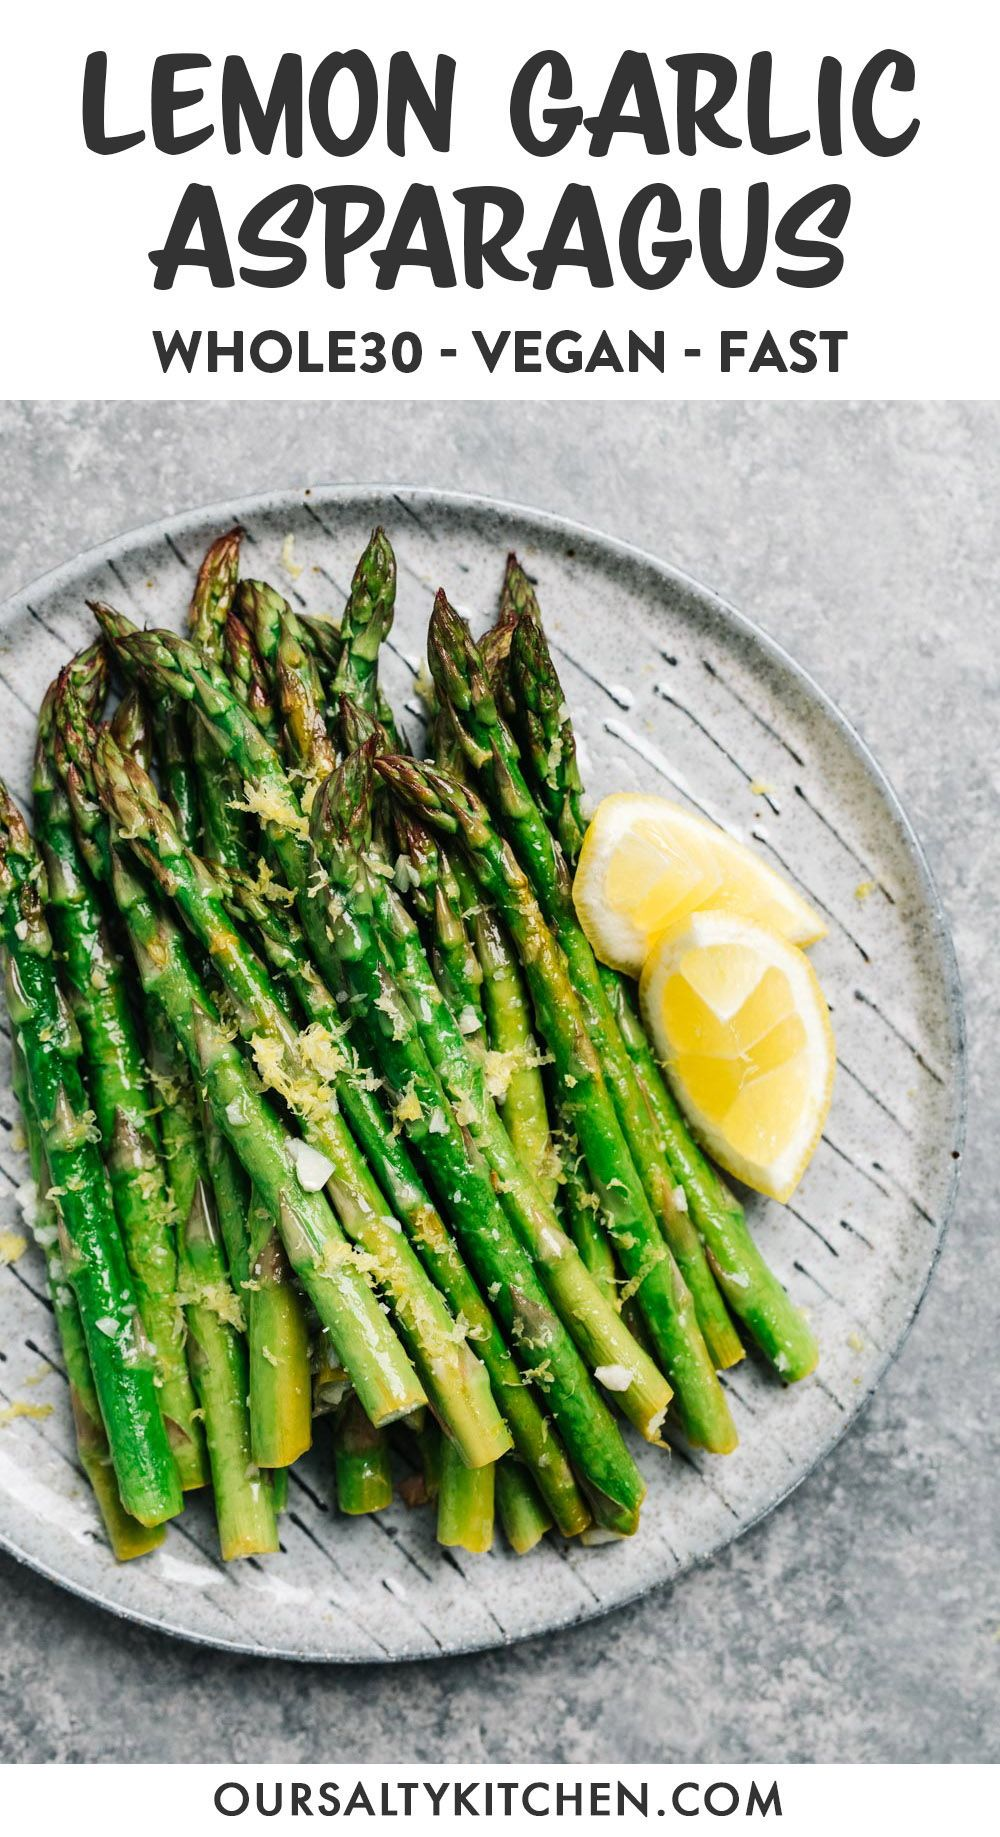 Oven Roasted Lemon Garlic Asparagus Whole30 Vegan Recipe Air Fryer Recipes Healthy Oven Roasted Asparagus Healthy Recipes